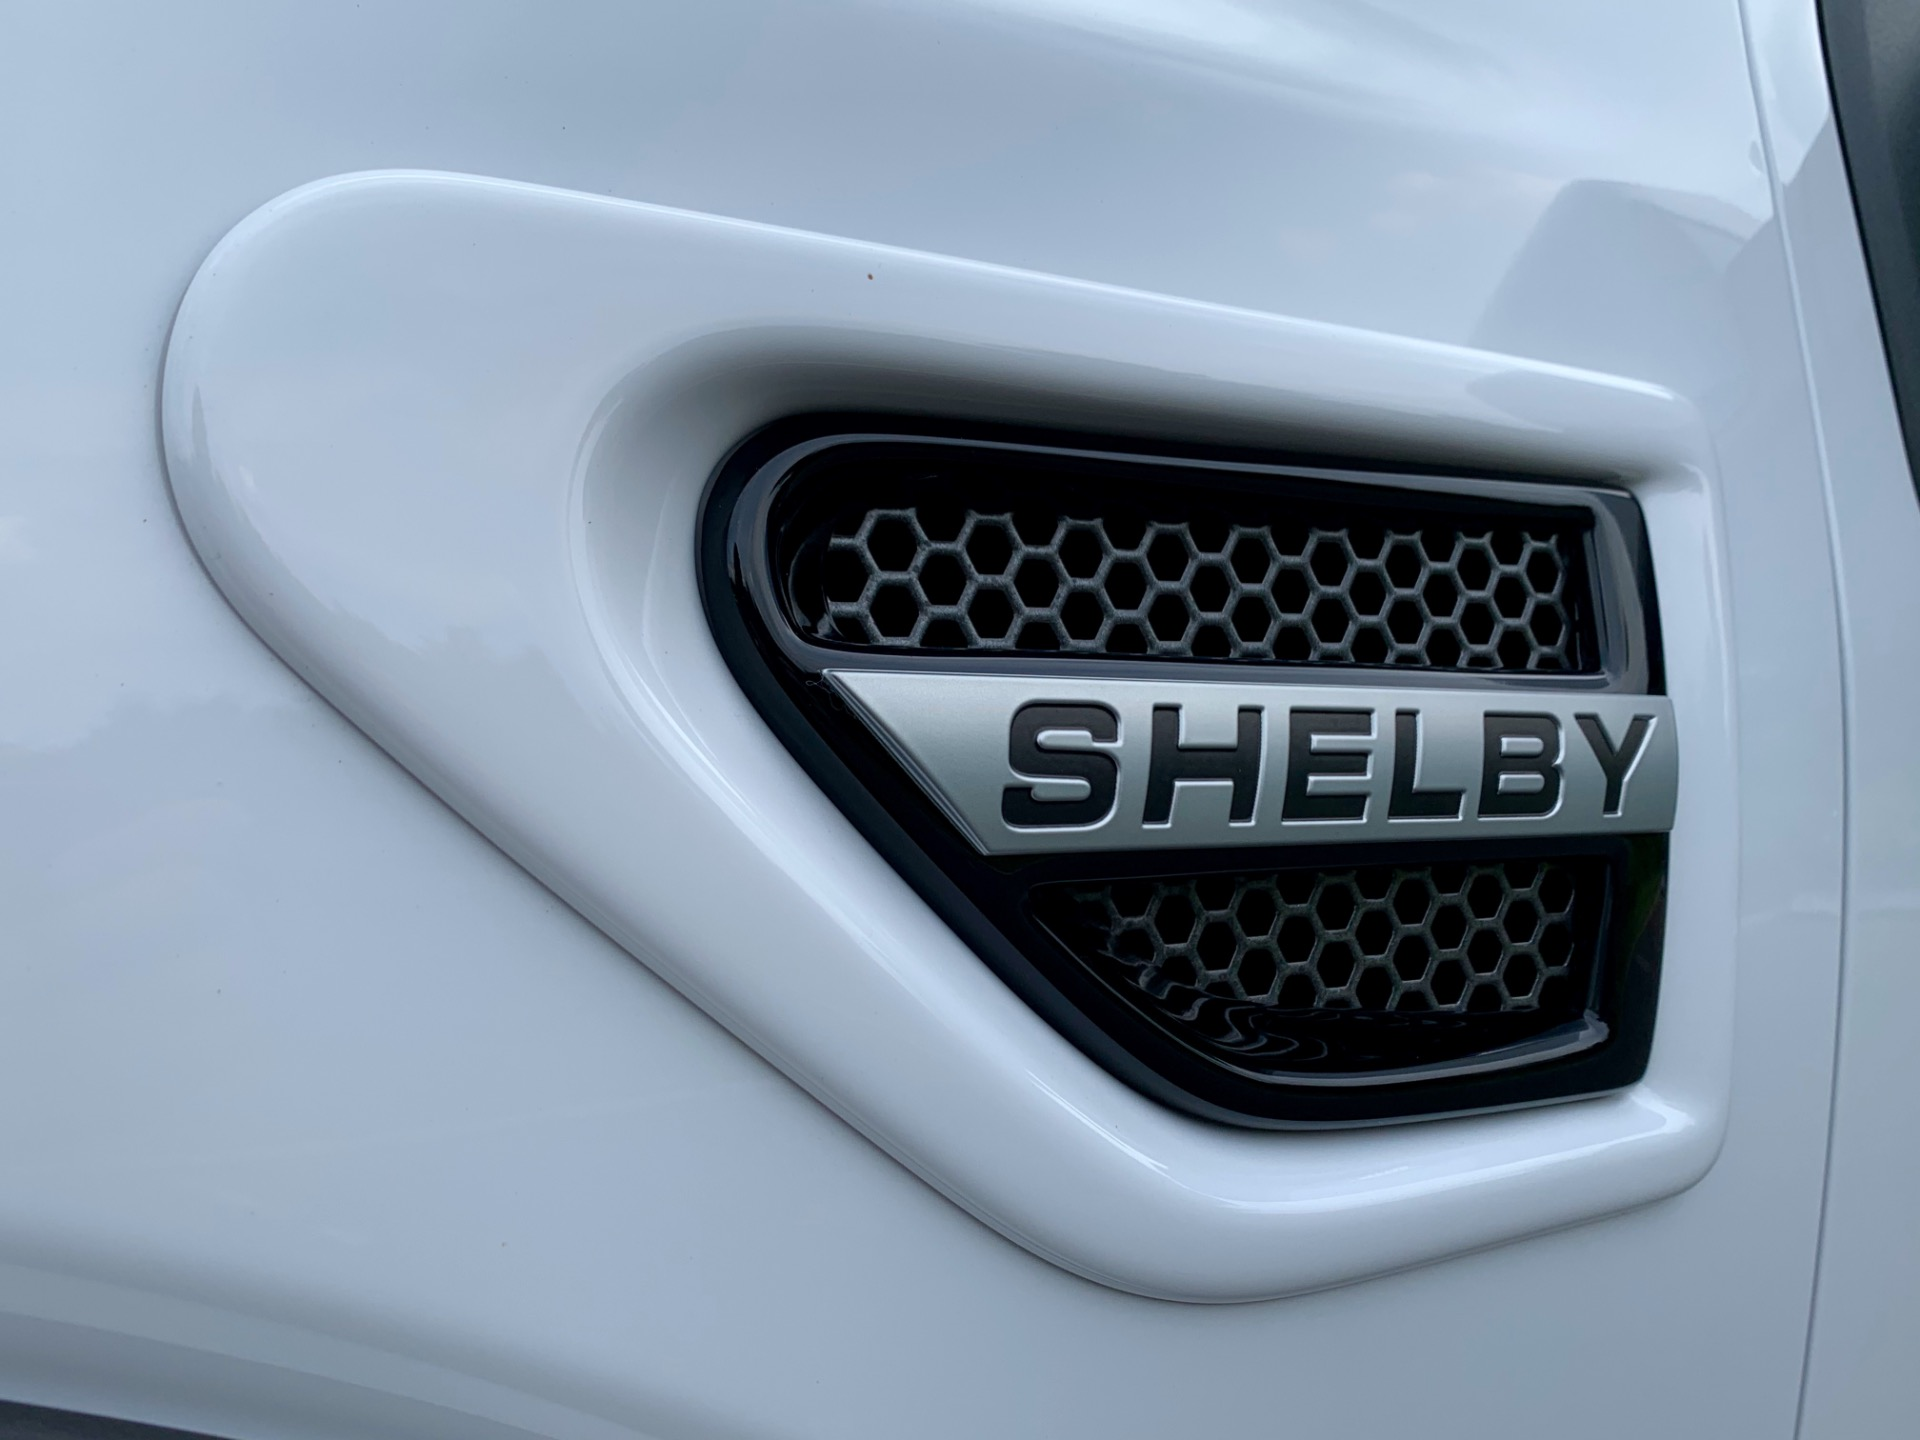 Used-2018-Ford-F-150-Lariat-SHELBY